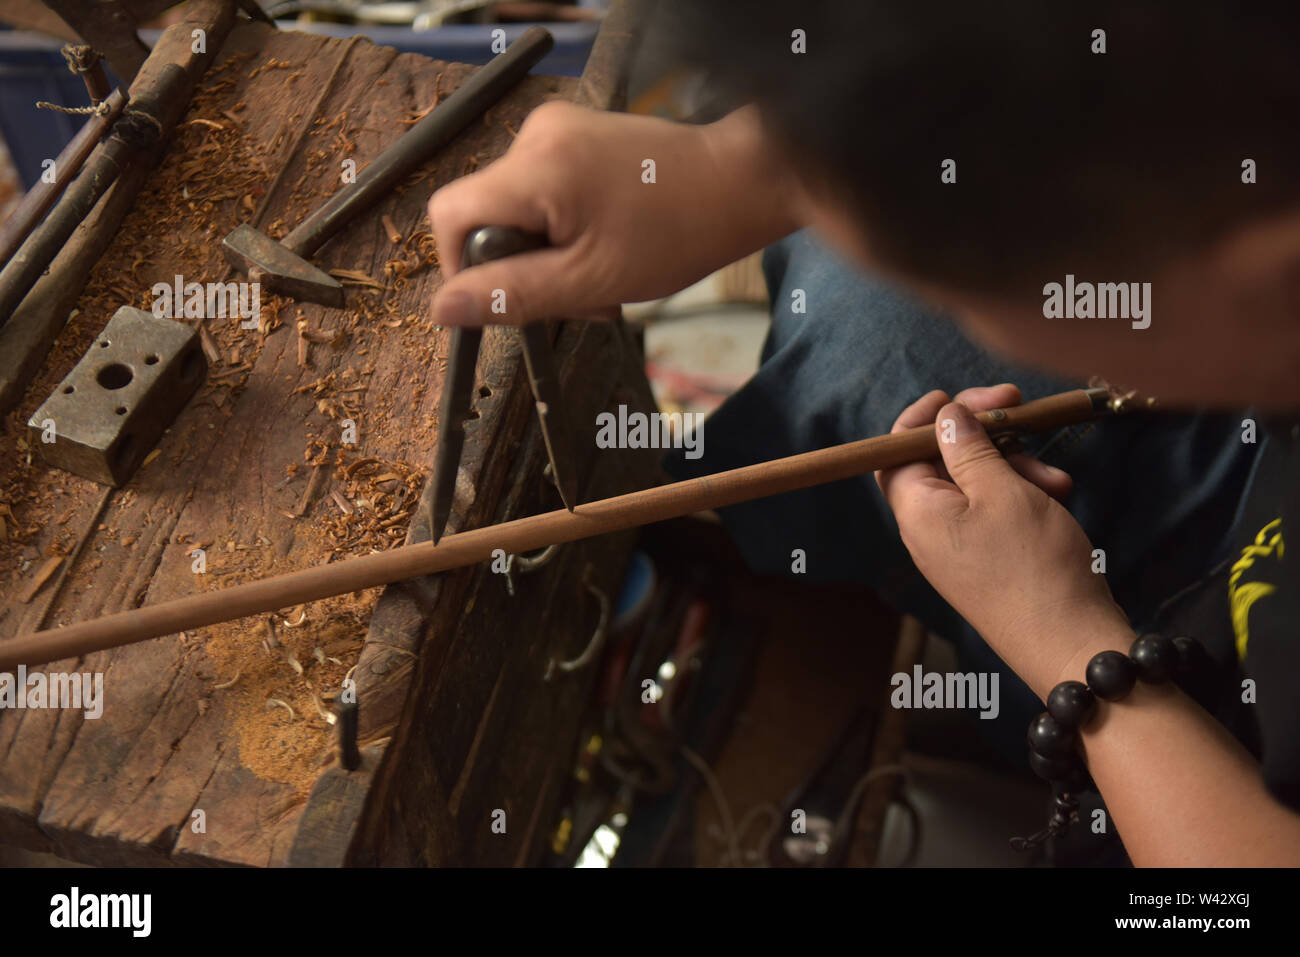 (190719) -- QINGDAO, July 19, 2019 (Xinhua) -- Sun Lianyong, a steelyard craftsman, processes the beam of a steelyard at his workshop in Jinkou Town of Jimo District in Qingdao, east China's Shandong Province, July 19, 2019. Steelyard, a traditional weighing instrument with a long history, used to be popular for its low cost and good portability. In the early 1990s, there used to be more than 30 steelyard workshops in Jimo as the development of market economy pushed up people's demand for steelyards.   The 49-year-old craftsman Sun Lianyong is an inheritor of traditional steelyard making techn - Stock Image